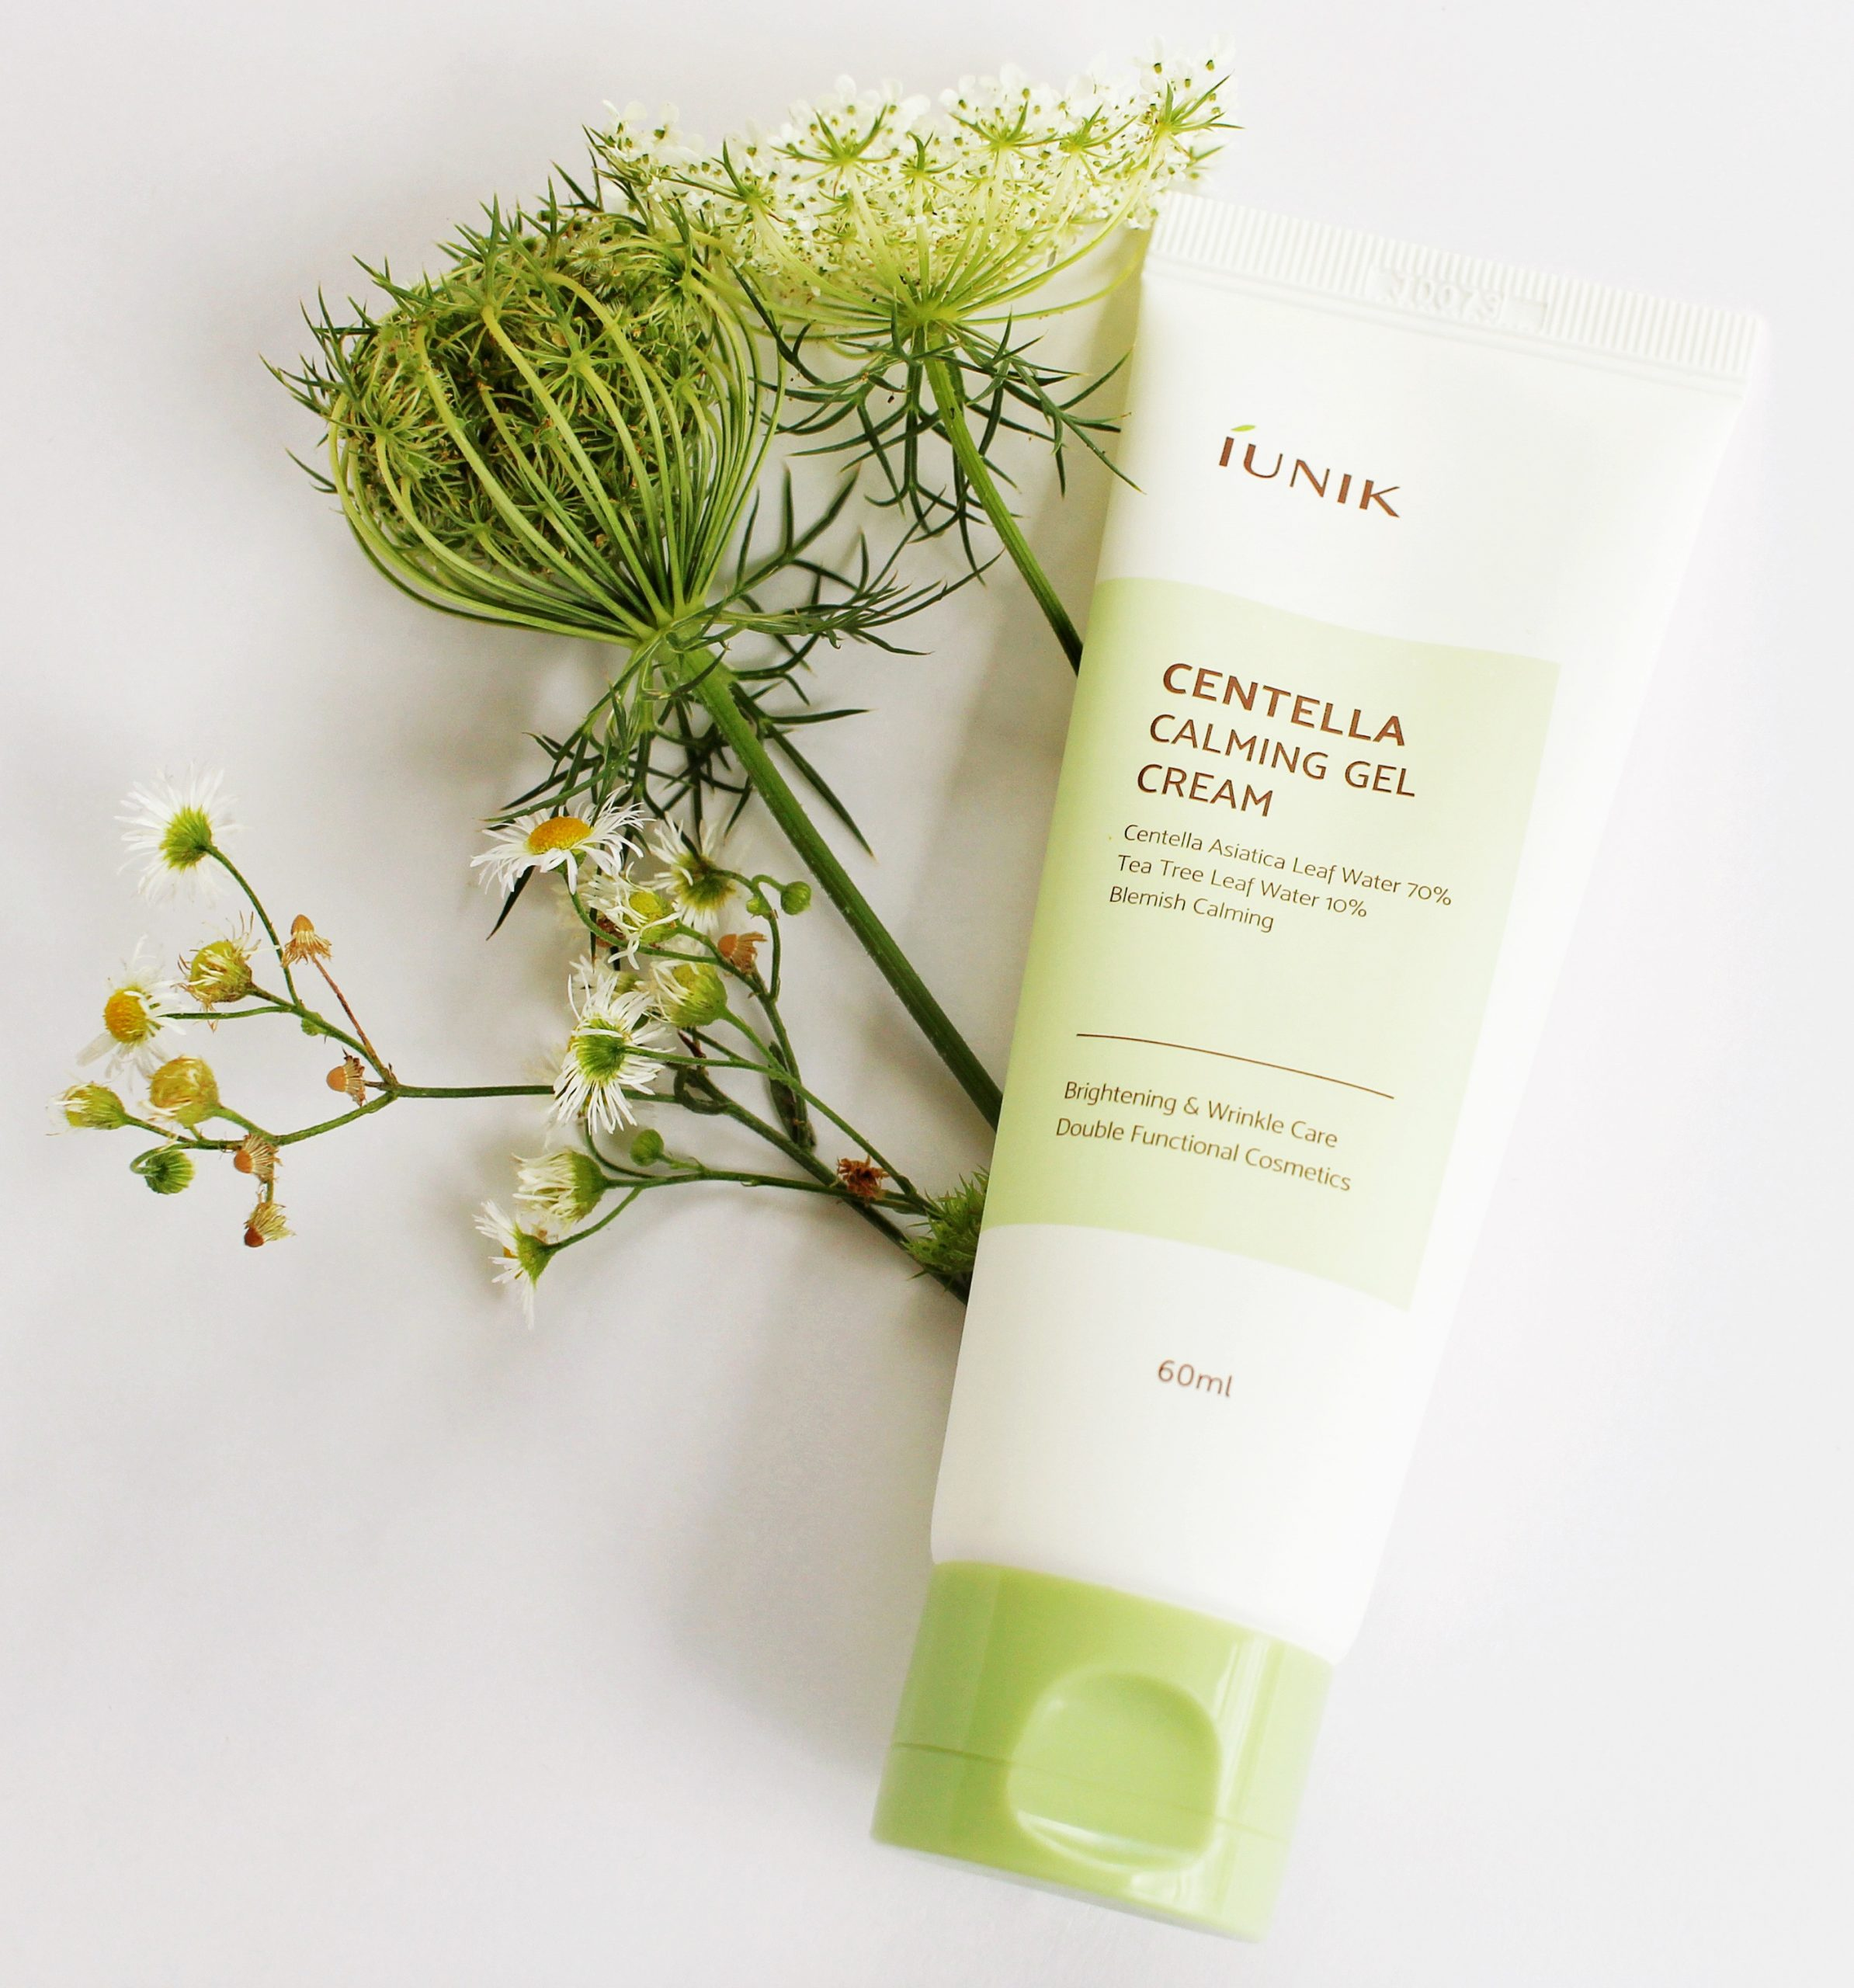 iUNIK Centella Calming Gel Cream Review